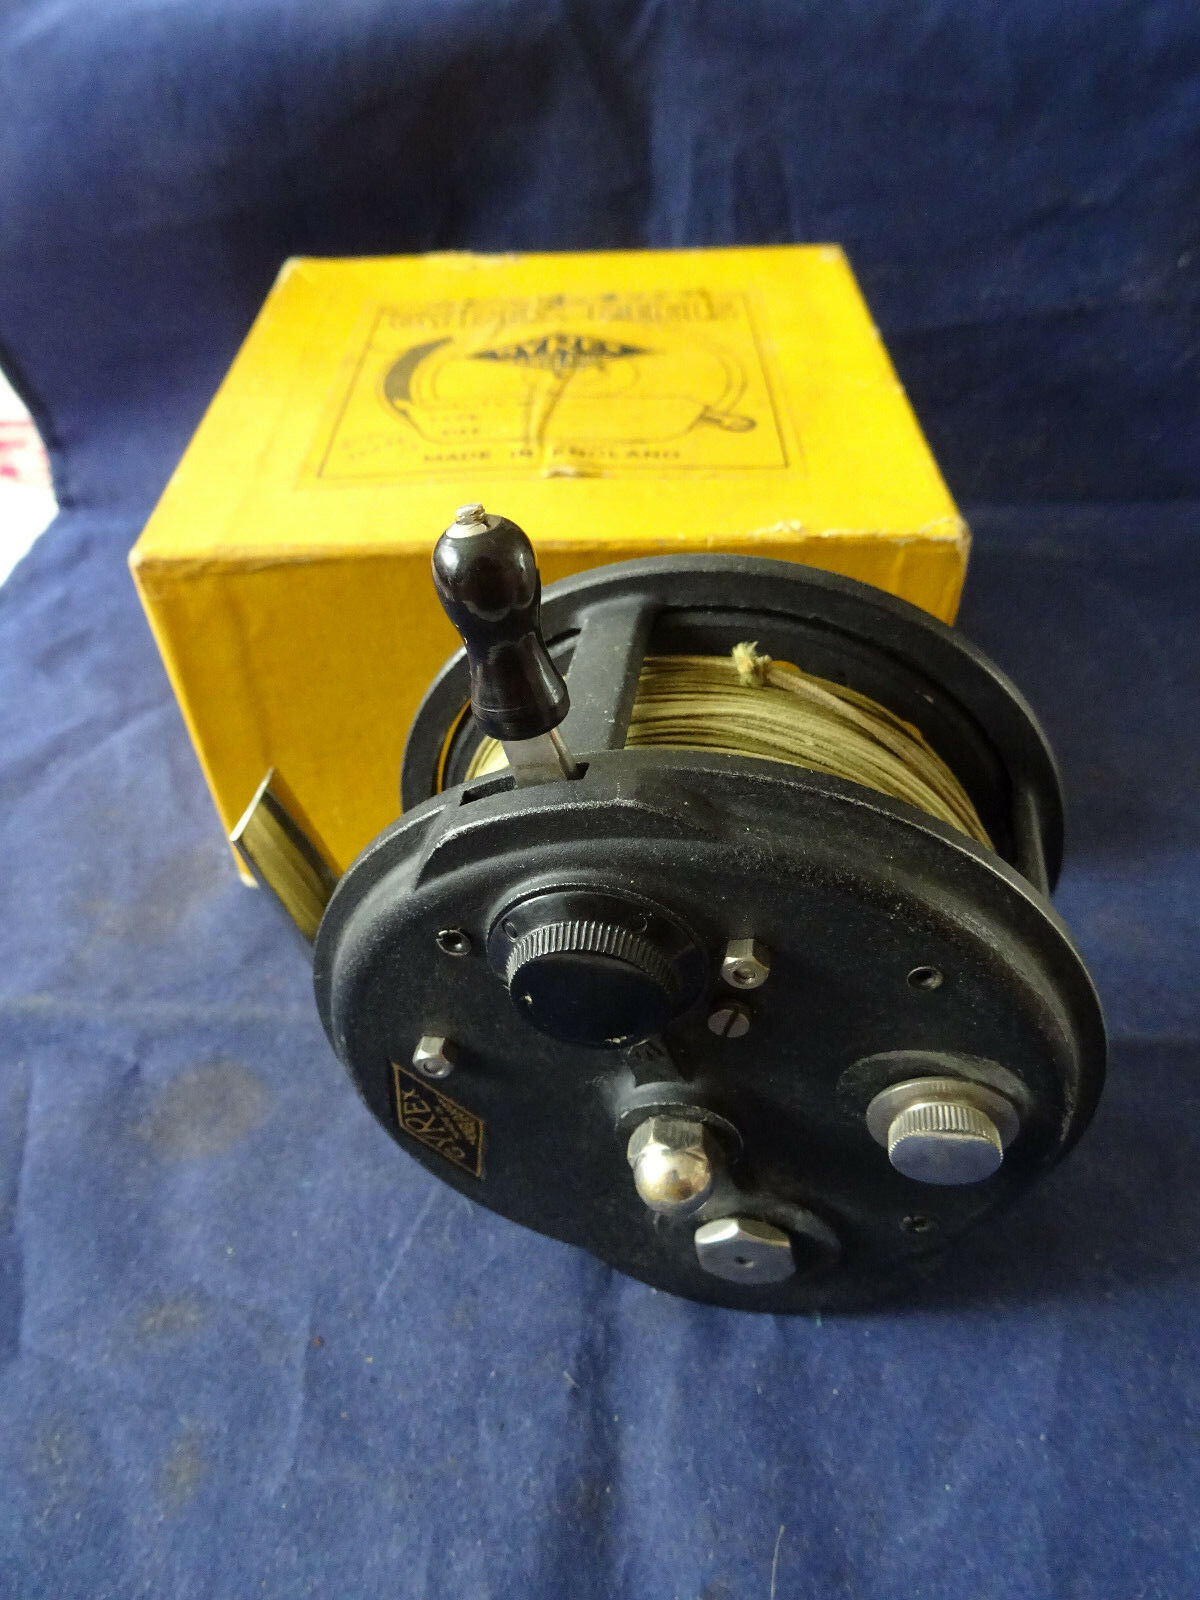 A VERY GOOD  VINTAGE 4  MILWARDS GYREX CASTING CENTREPIN REEL  quality product